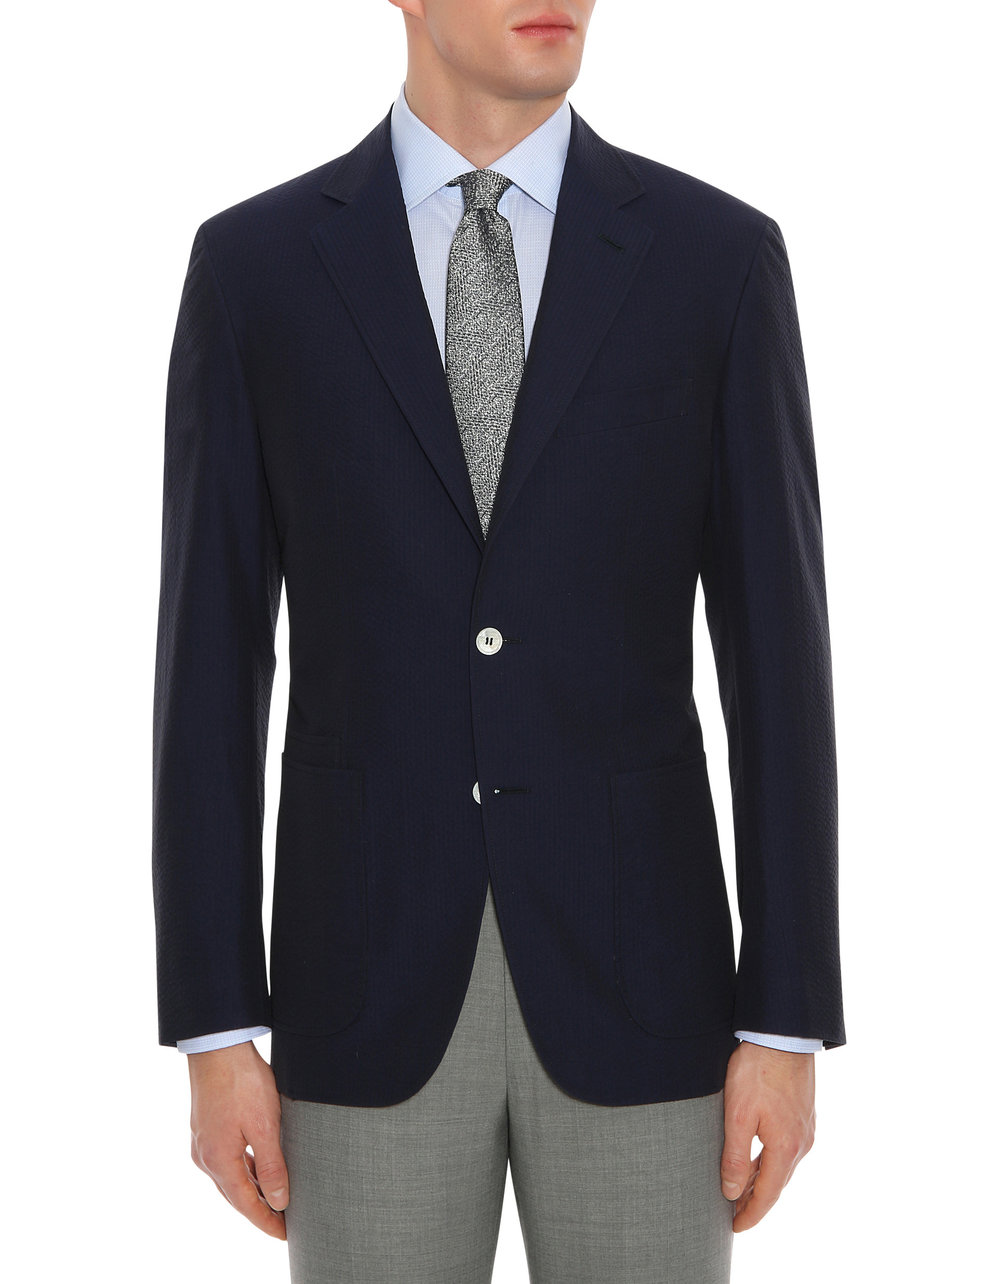 Look 3: Navy Seersucker Blazer -